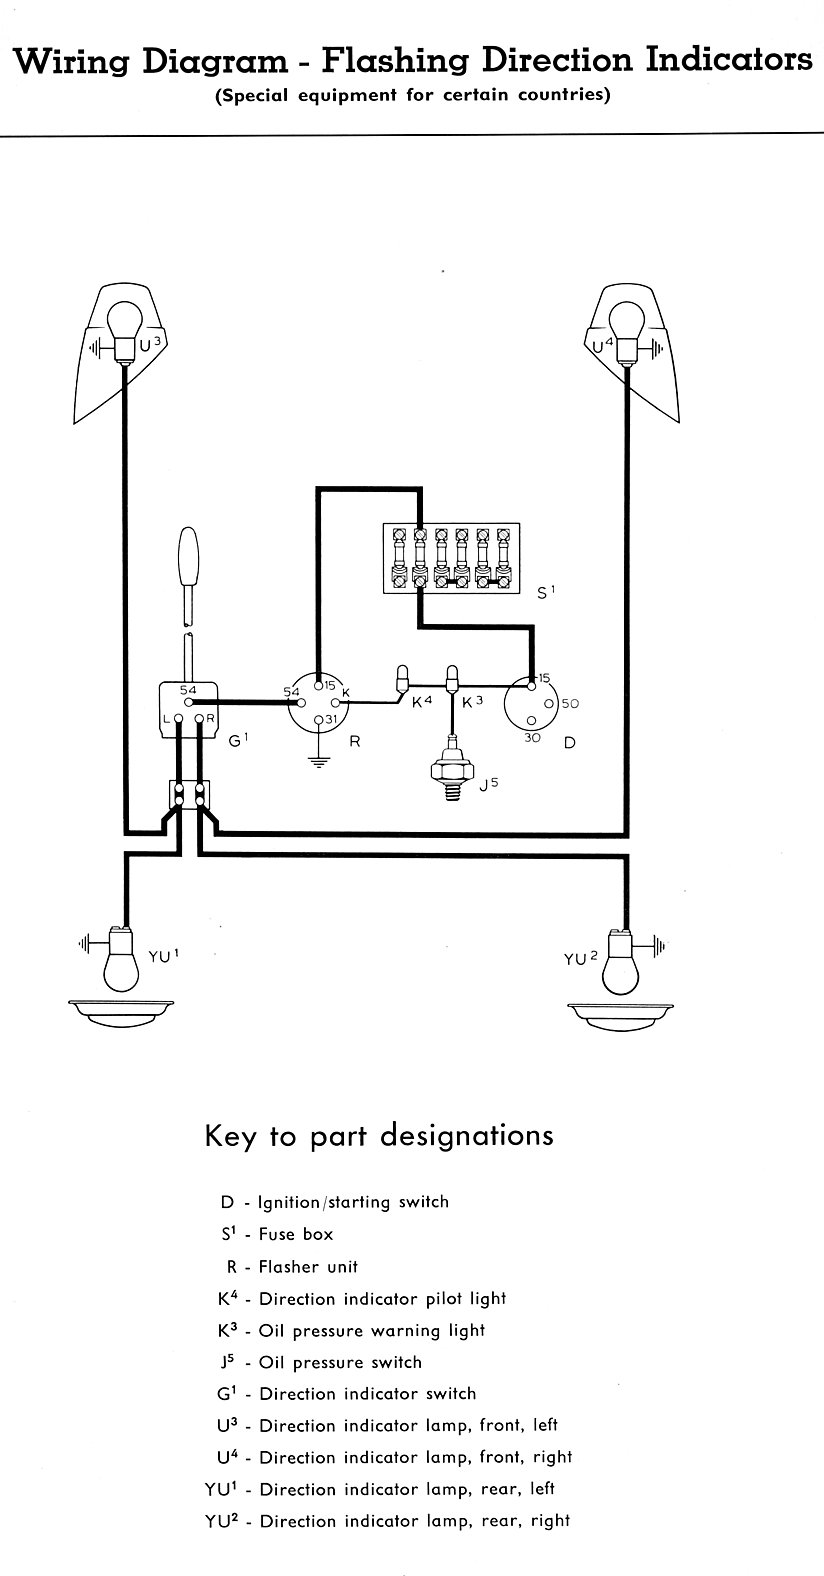 Bus Nov Turnsignalfuse on 1968 vw beetle wiring diagram